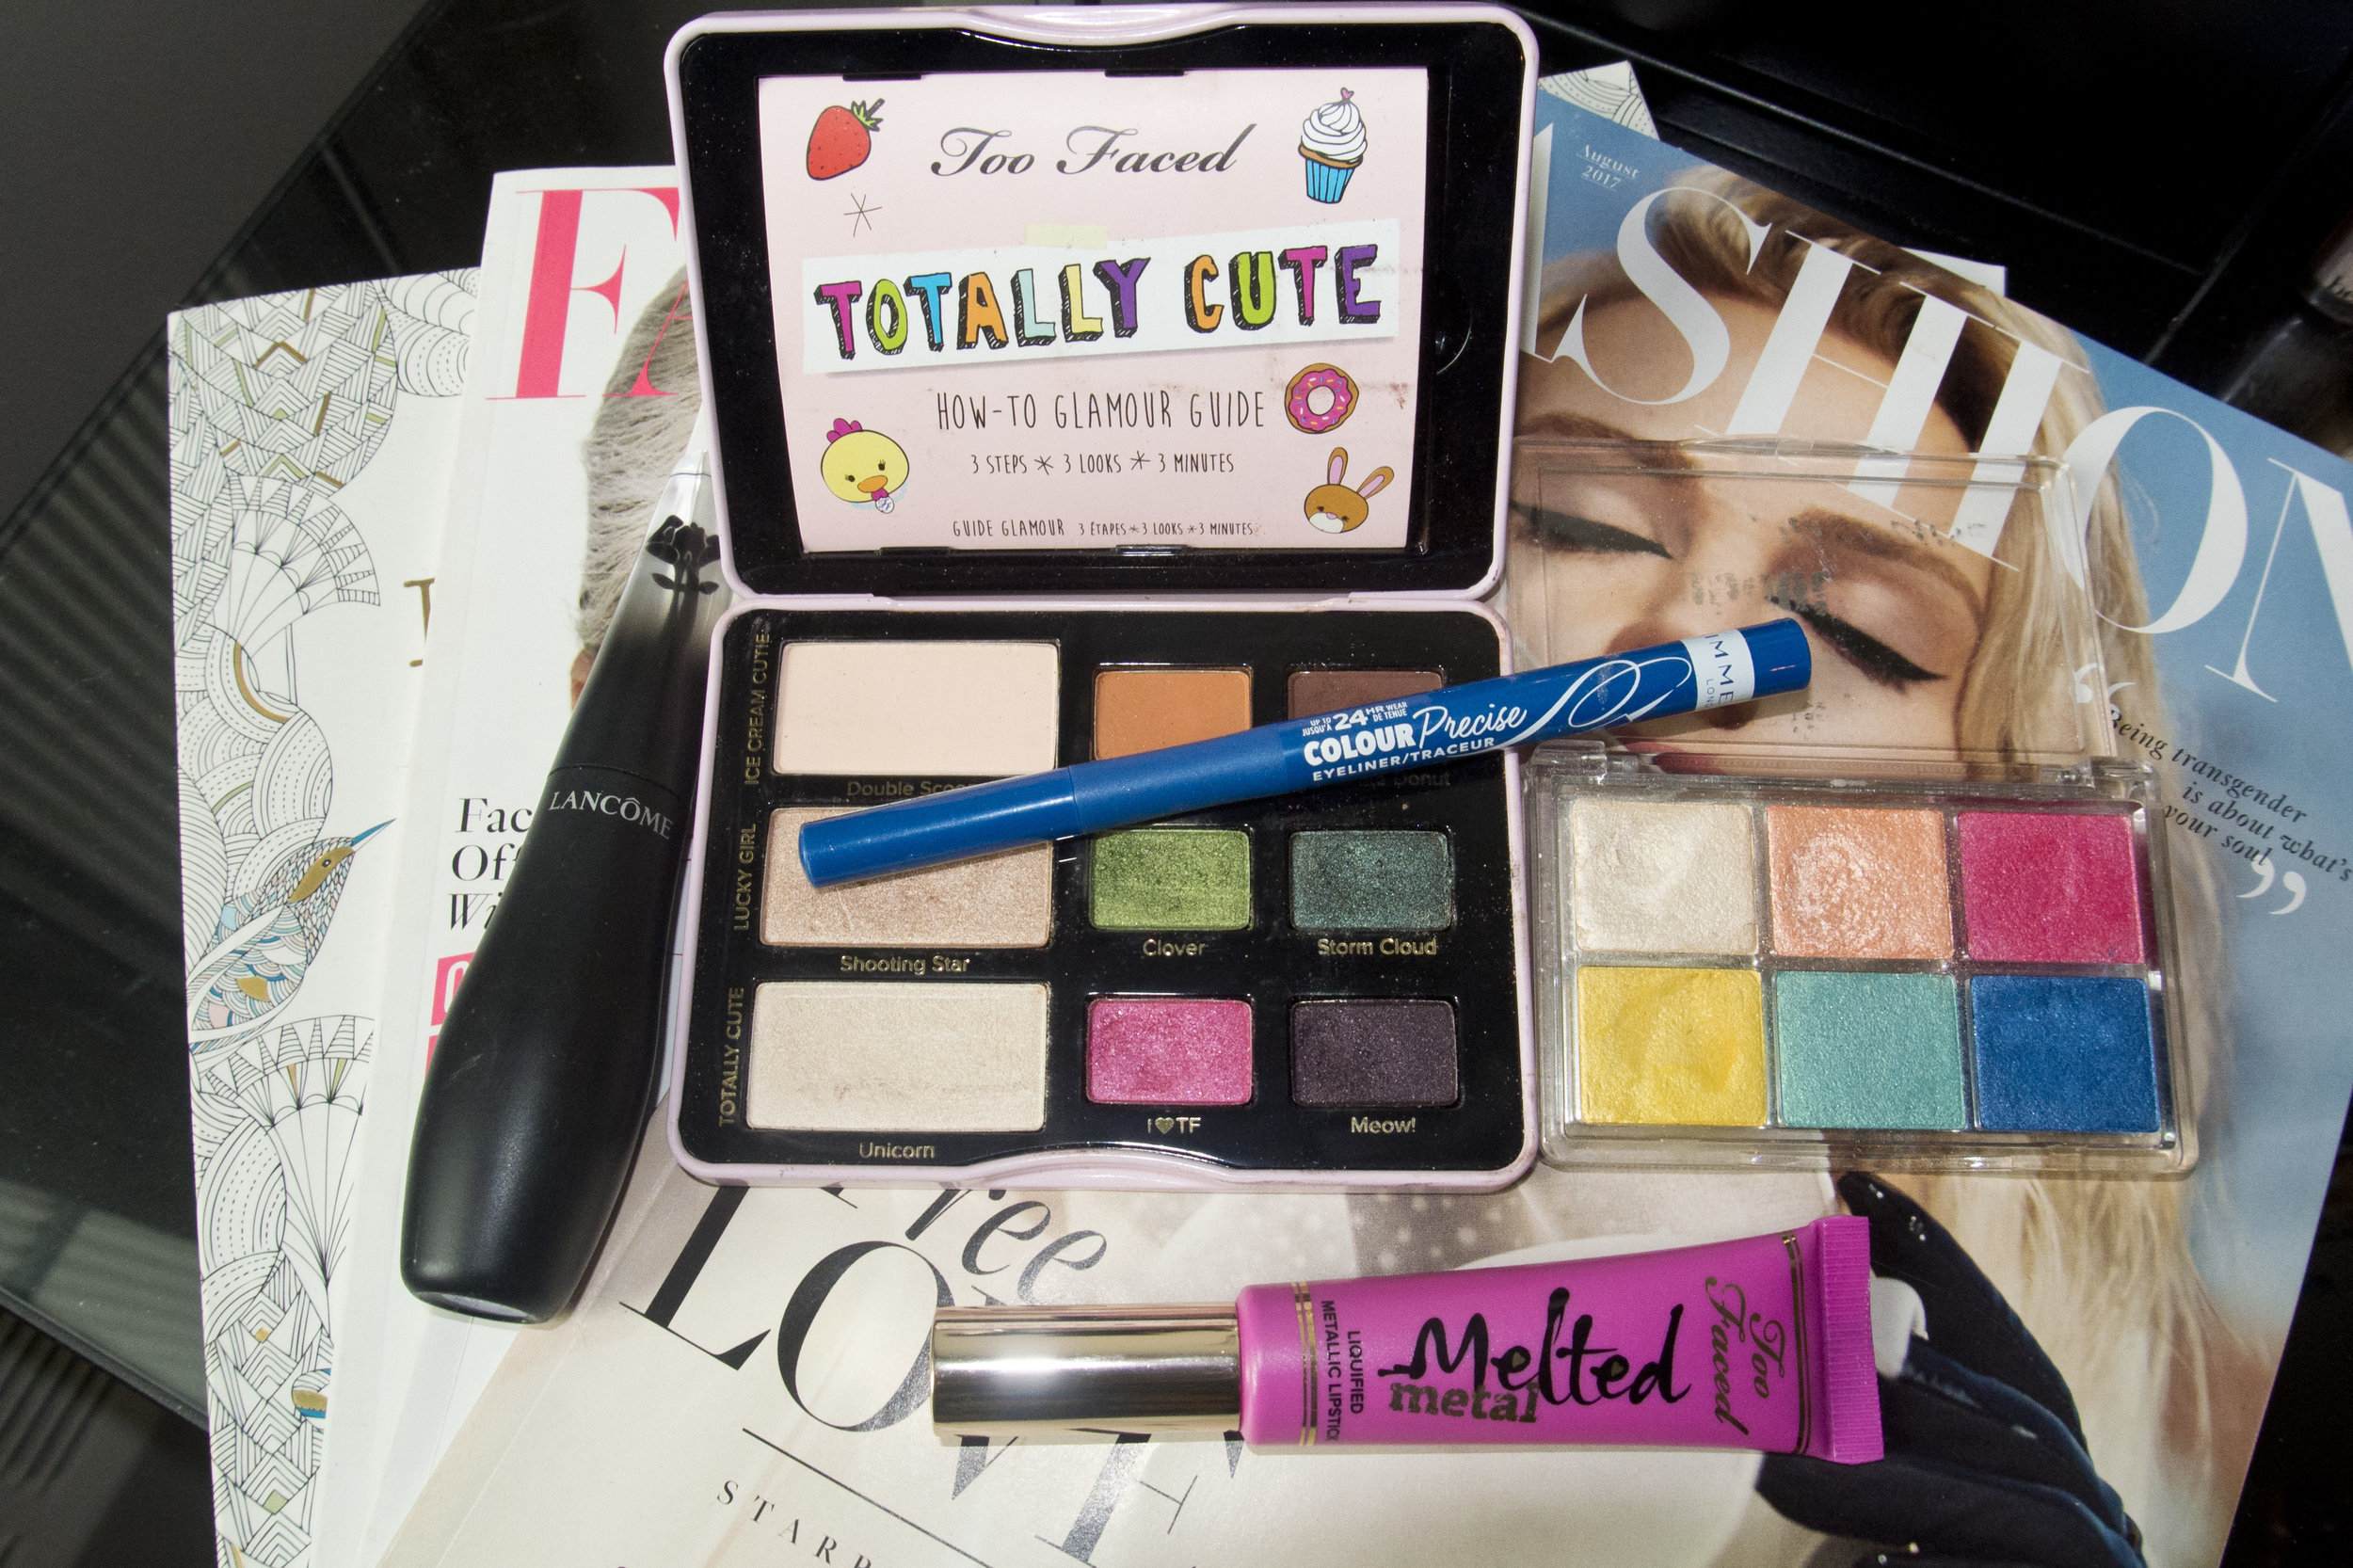 Lancome Grandiose Extreme 003, Too Faced Totally Cute Palette, Essence All About Paradise, Rimmel Colour Precise & Too Faced Melted Metallic Dream House